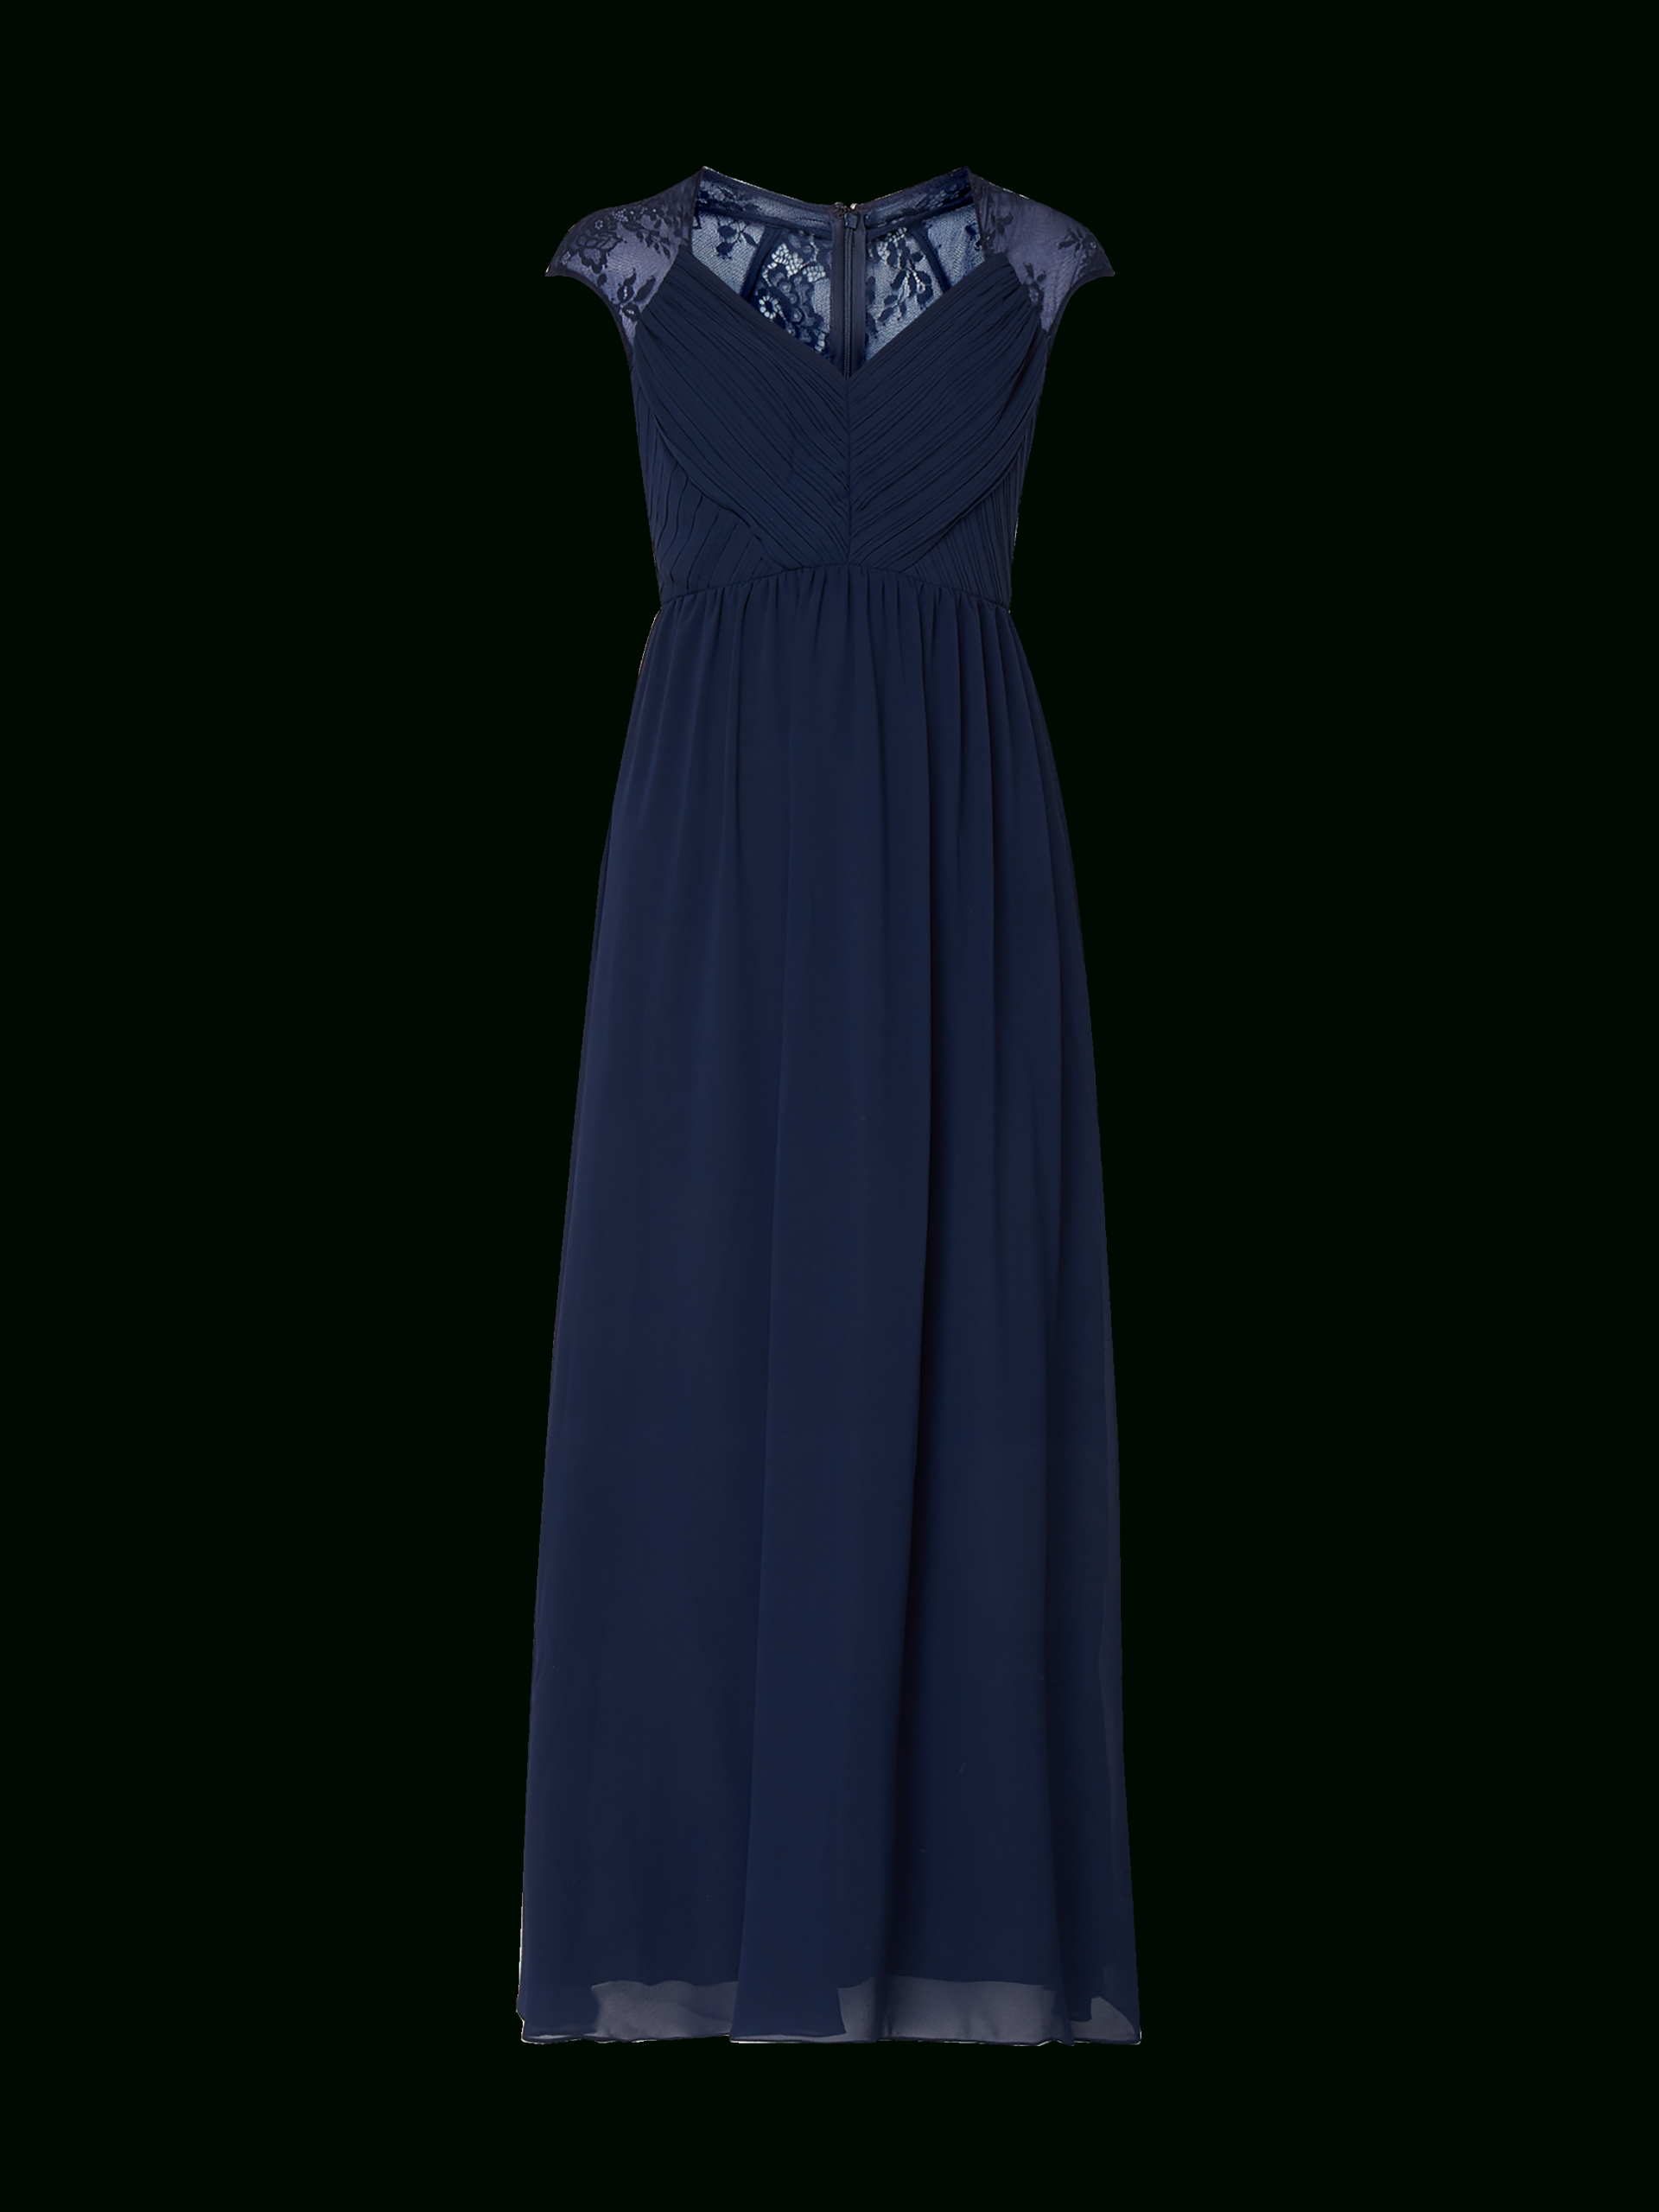 10 Luxurius Y.A.S Abendkleid für 2019Formal Schön Y.A.S Abendkleid Stylish